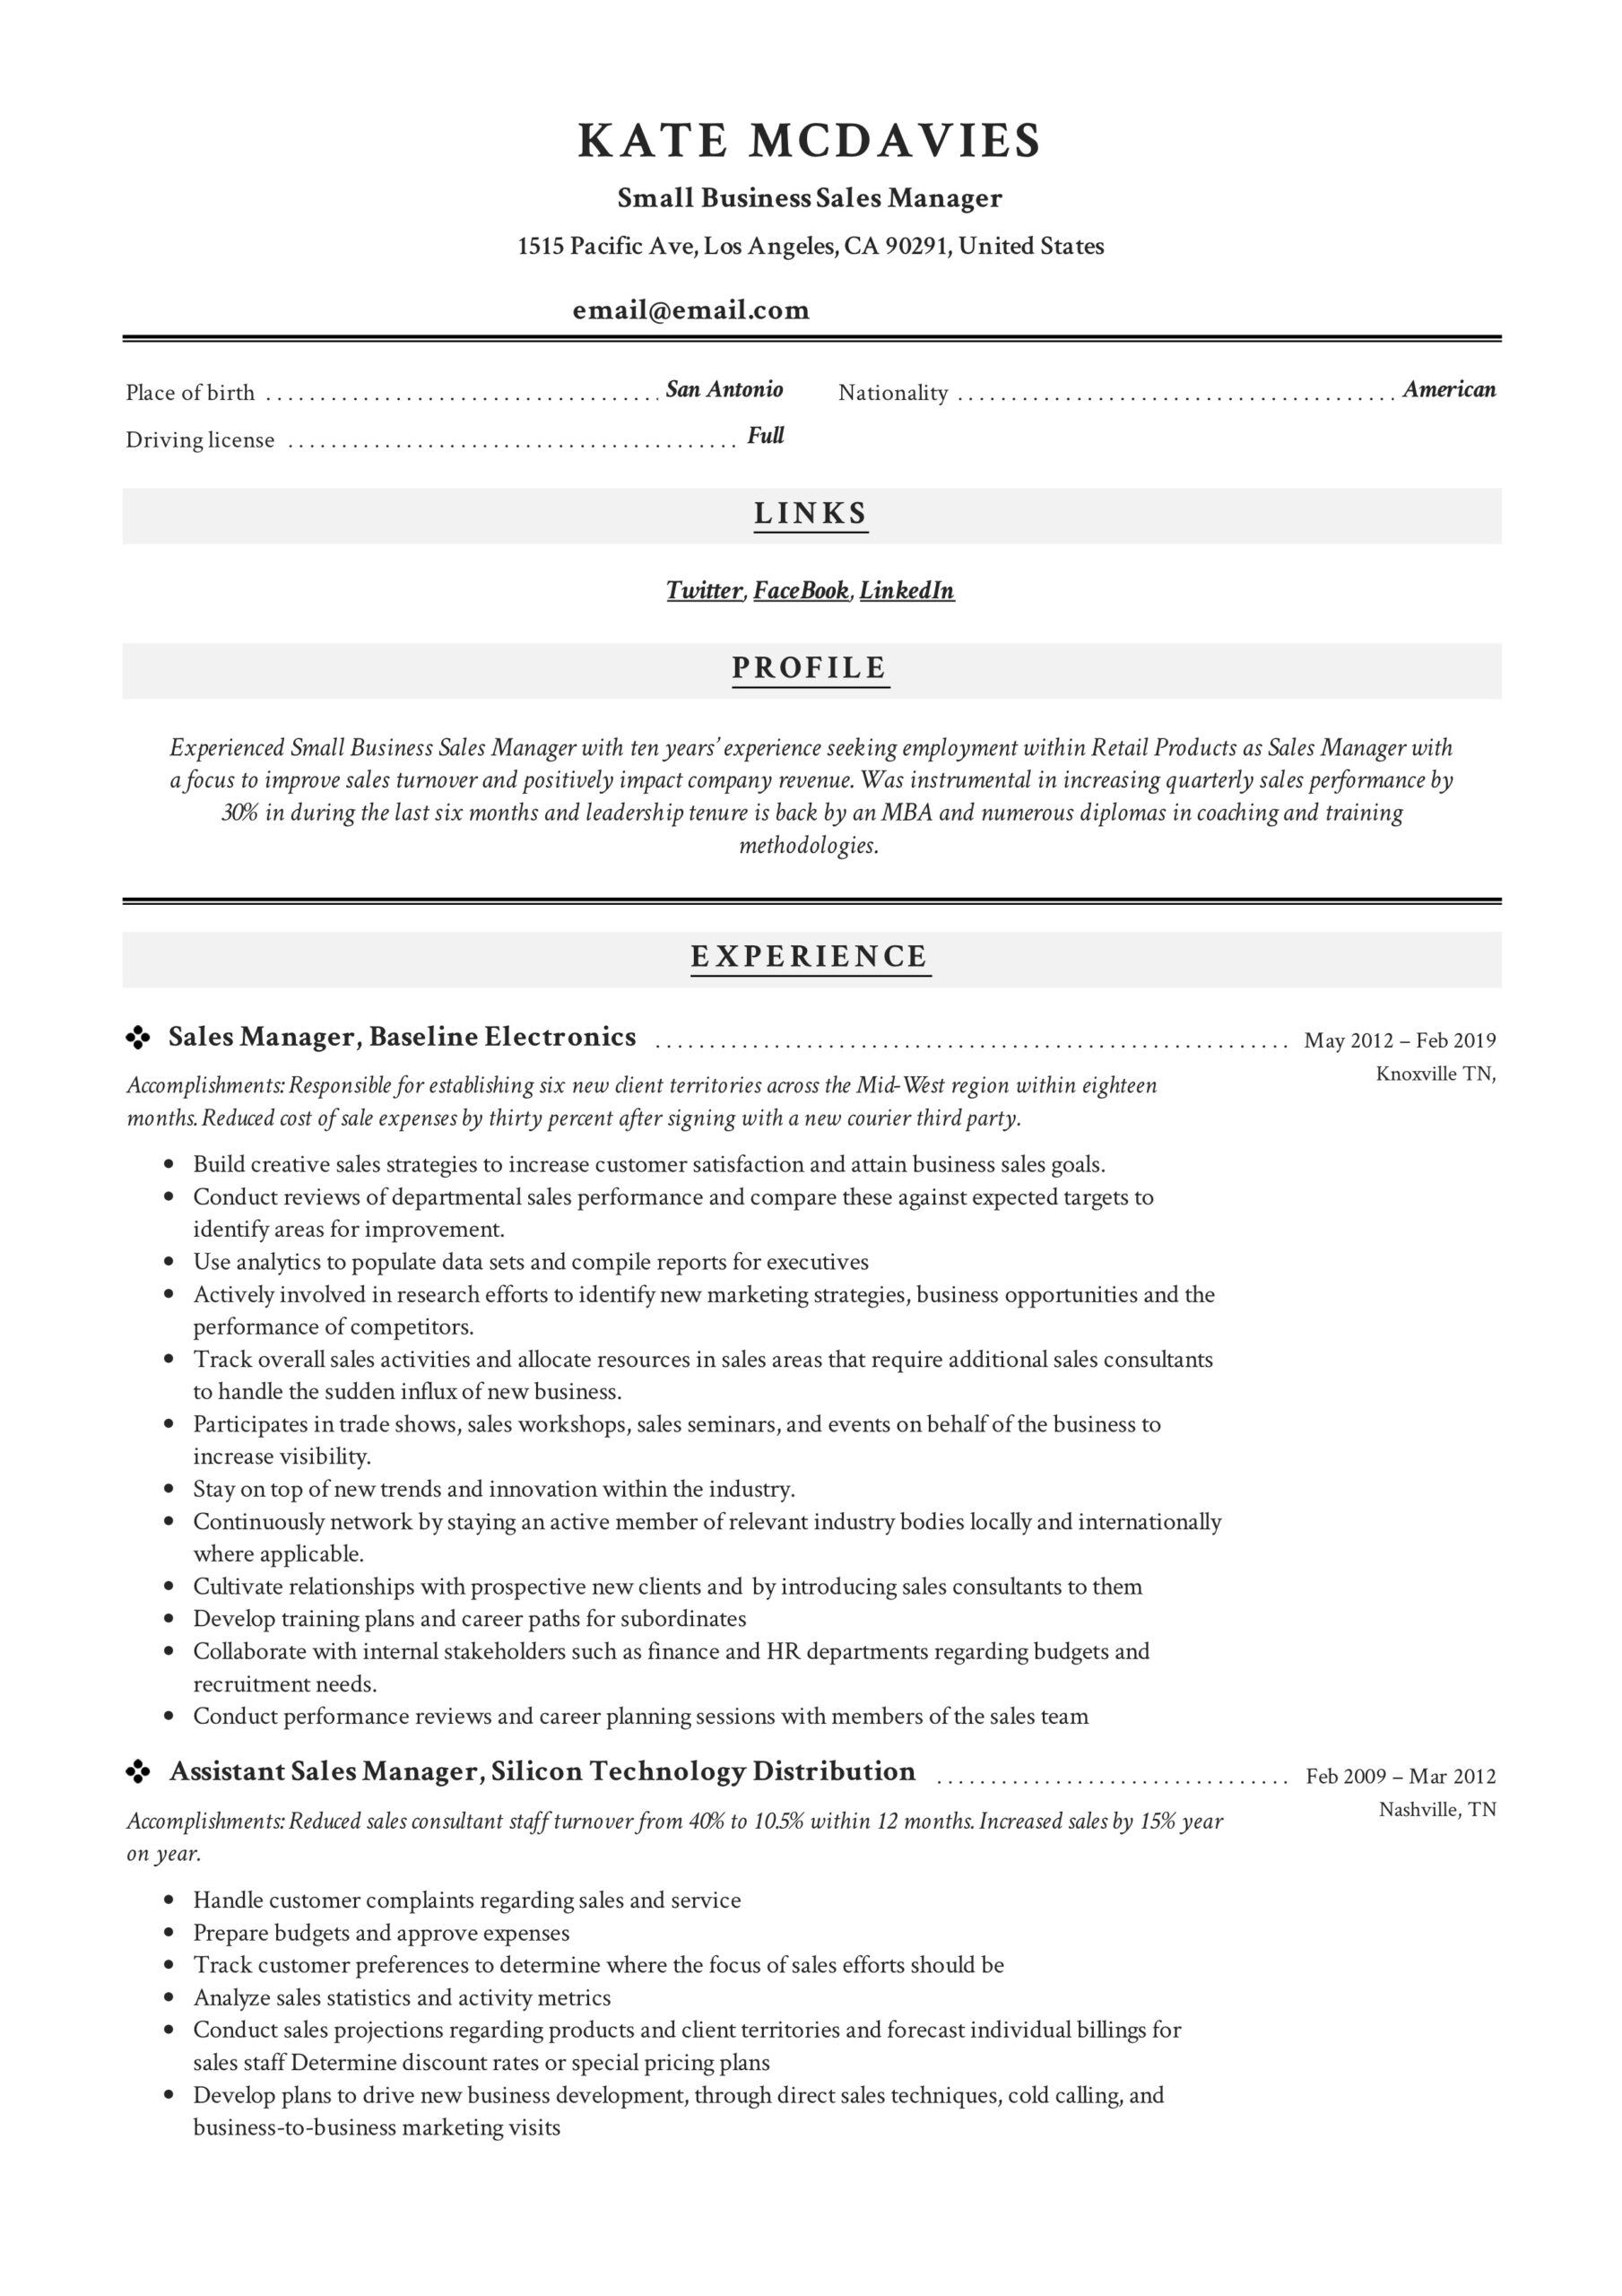 guide small business manager resume x12 sample pdf retail training example cute template Resume Retail Training Manager Resume